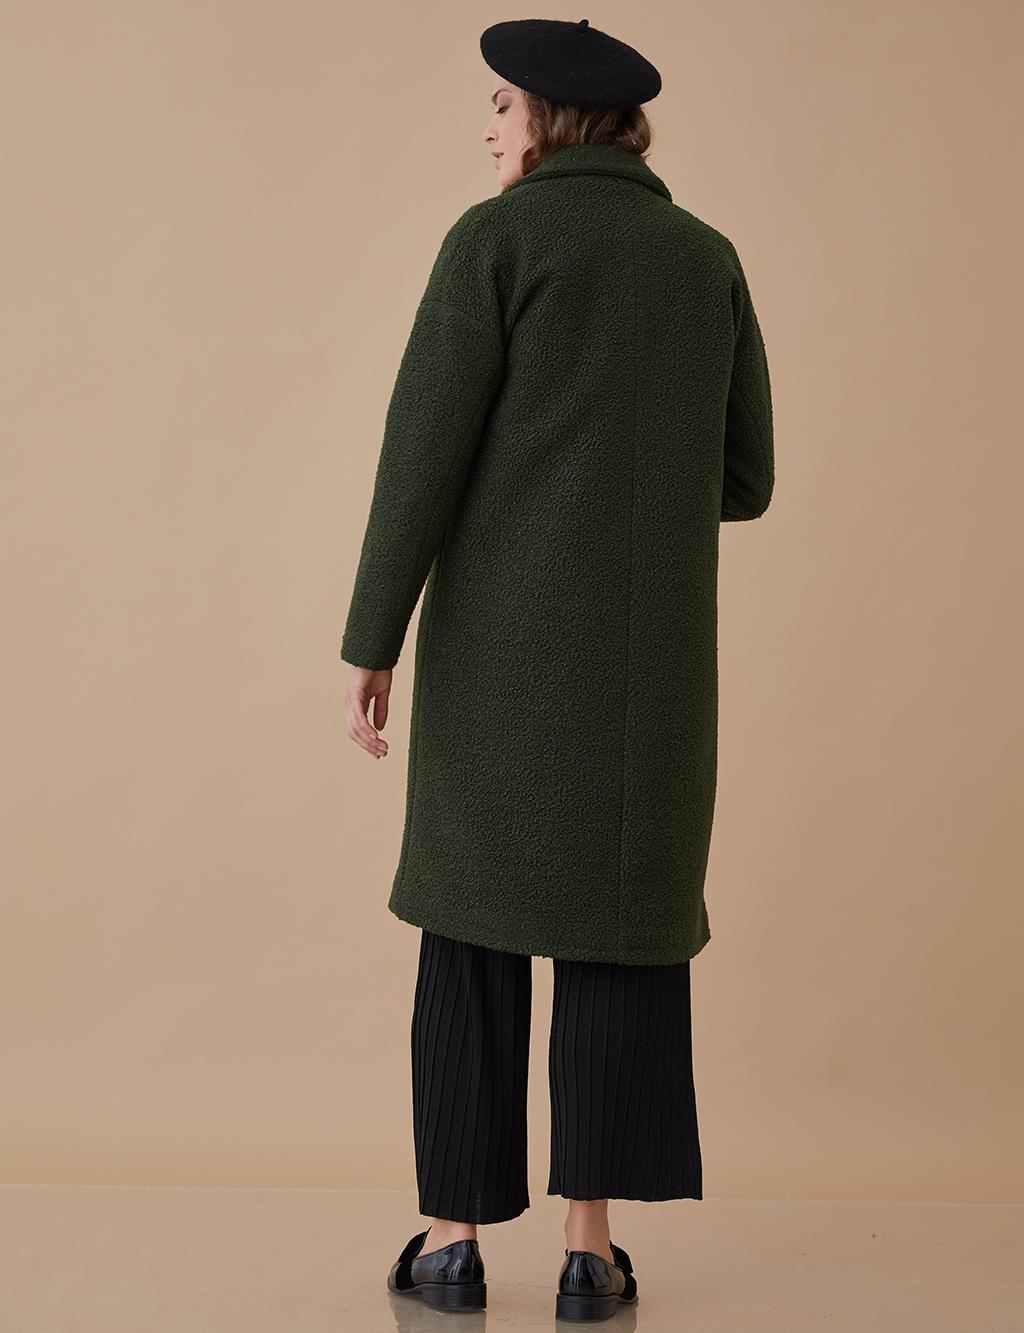 Collar Detailed Coat Green A8 17062